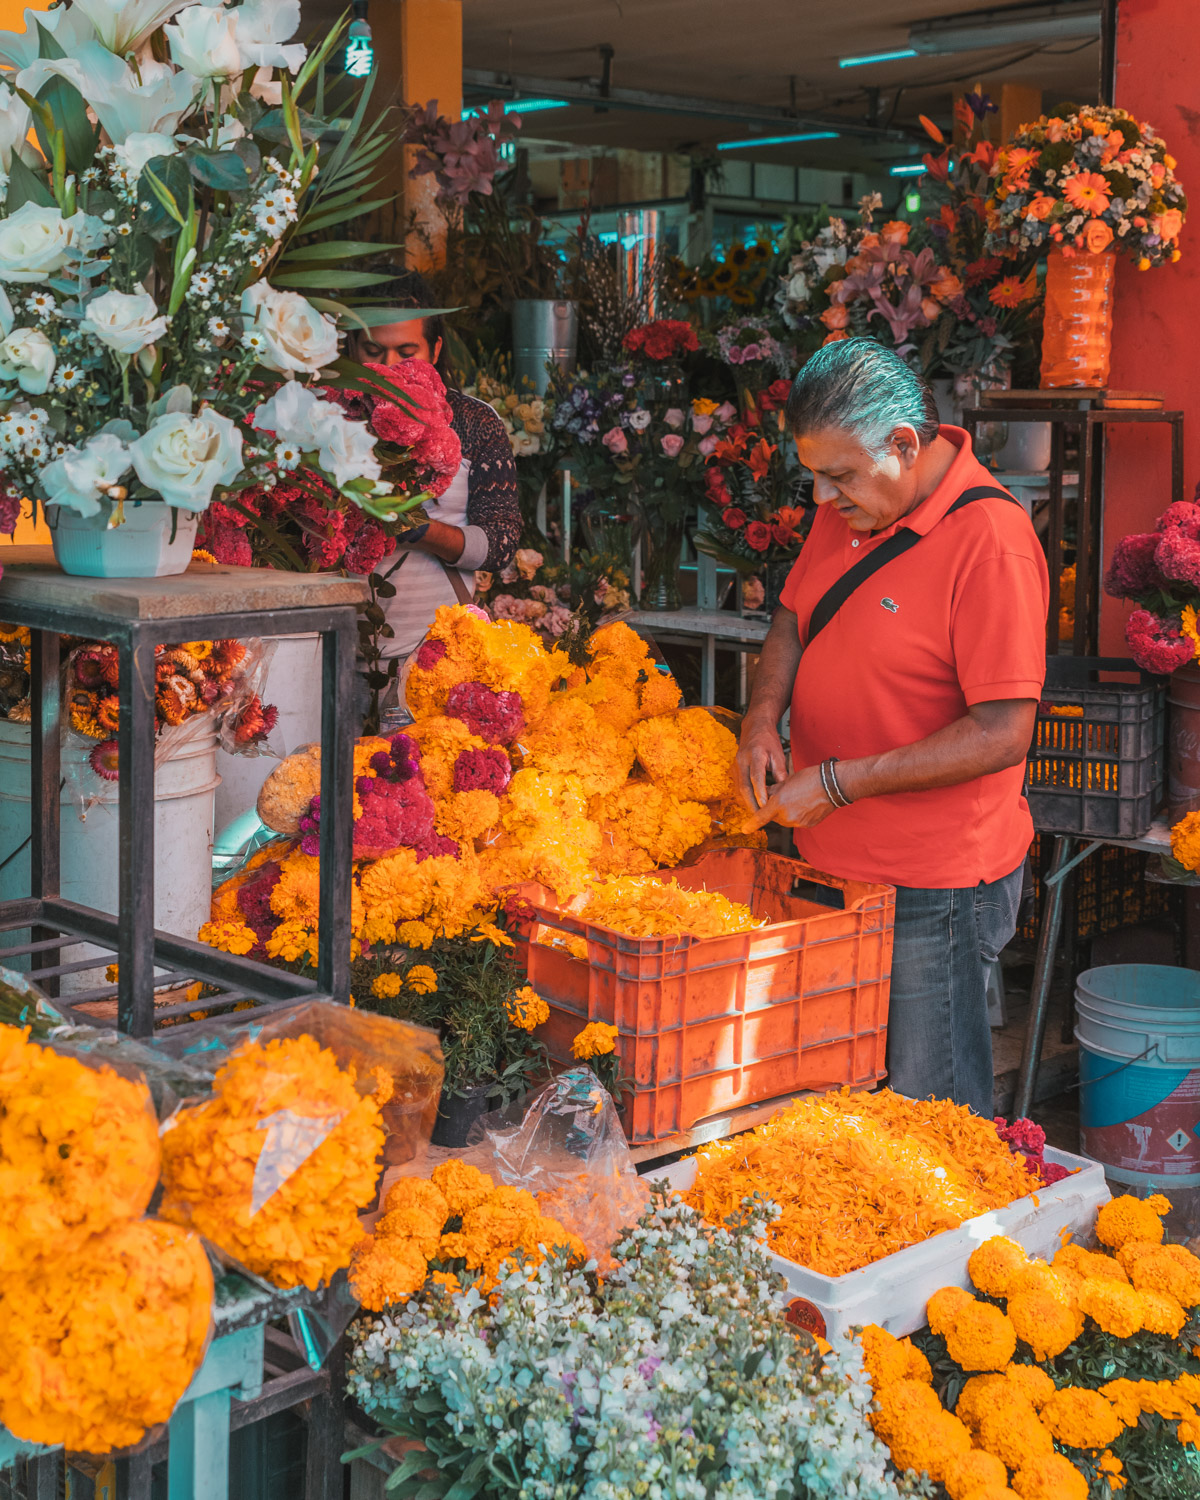 Marigolds at the market // What to Do In Mexico City for Day of the Dead // www.readysetjetset.net #readysetjetset #mexicocity #dayofthedead #traveltips #blogtips